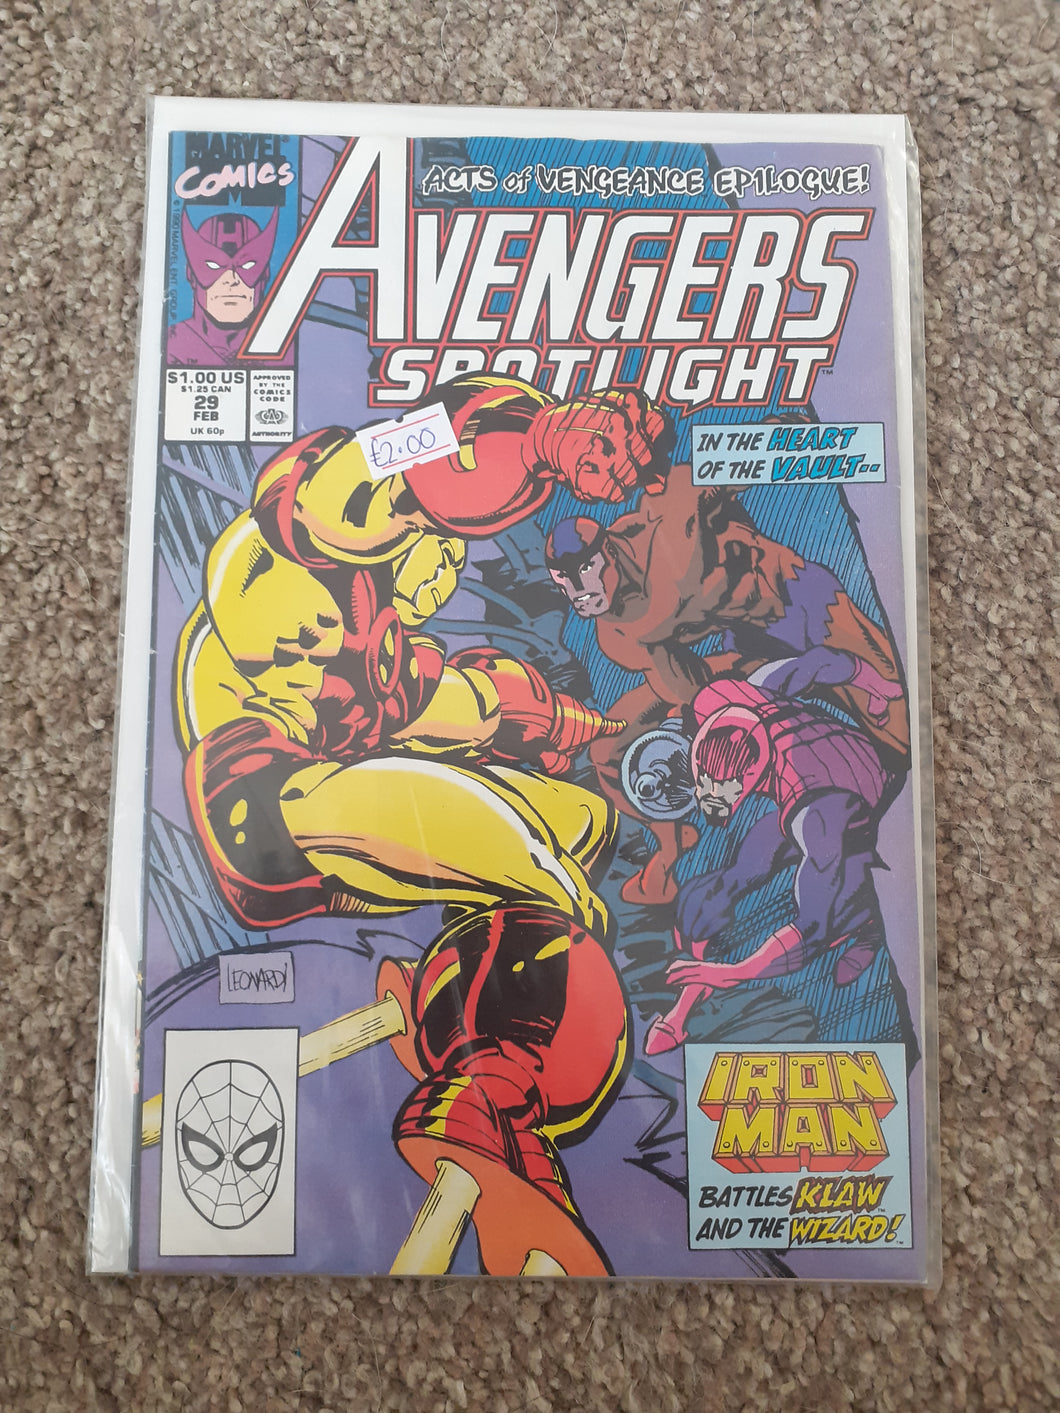 Avengers Spotlight: Acts of Vengeance Epilogue #29